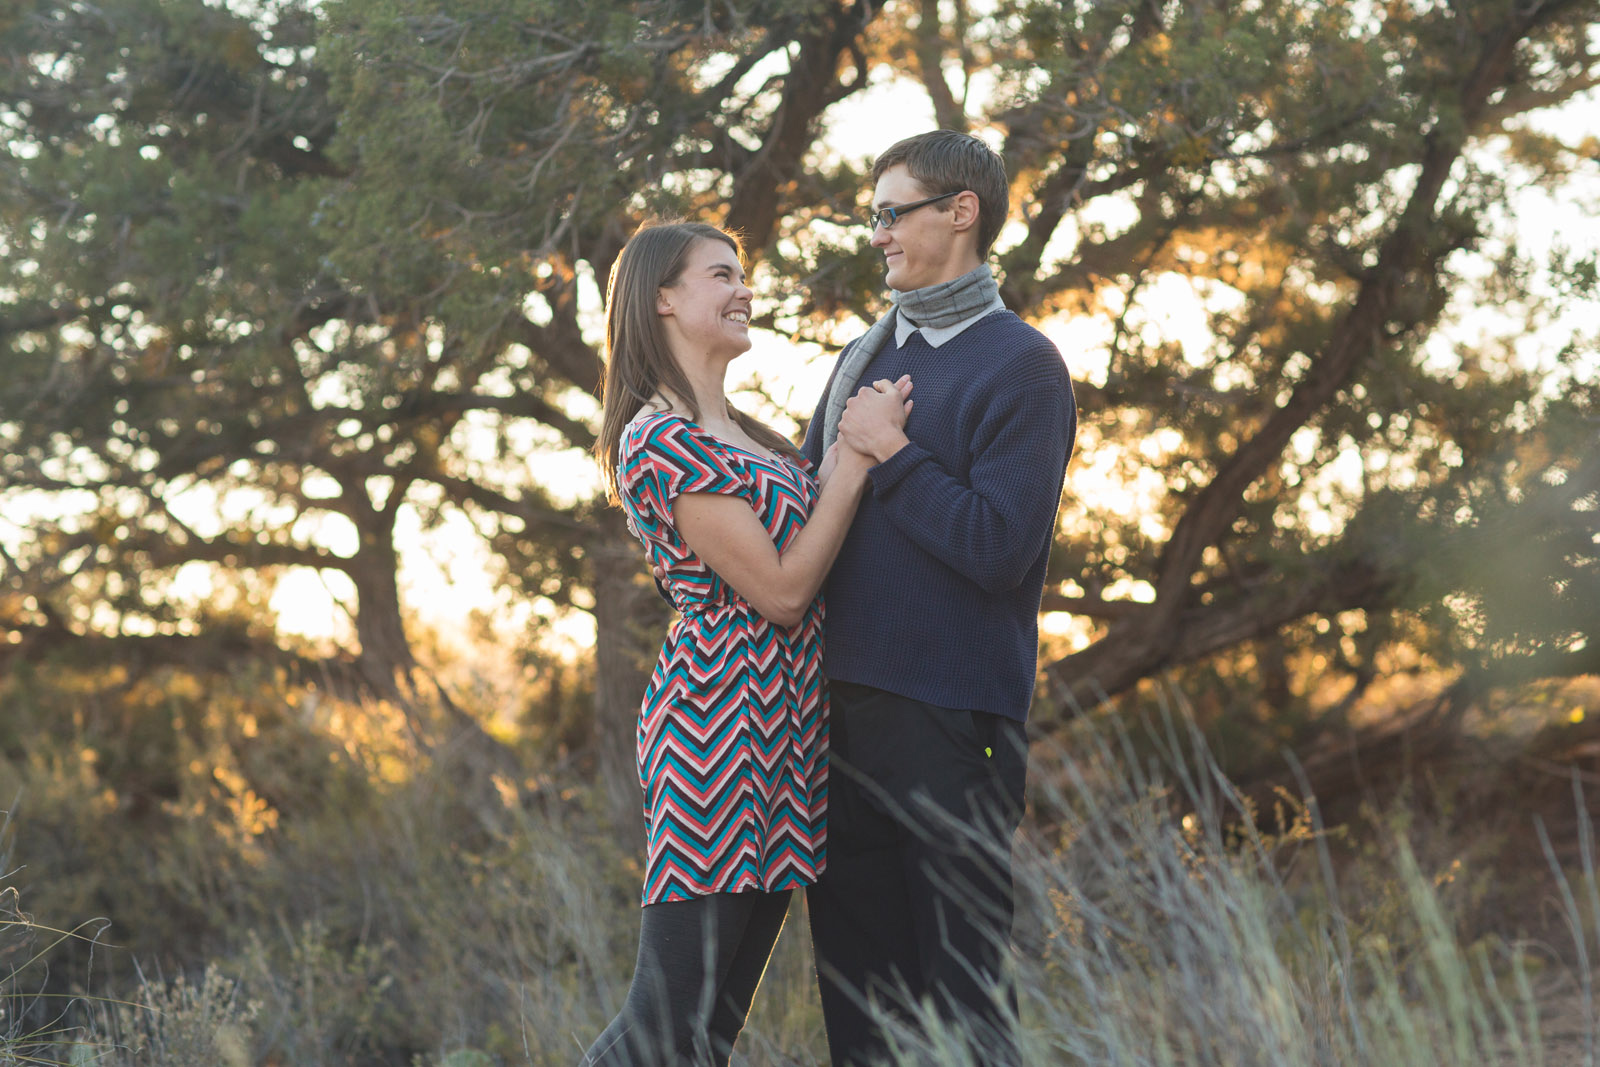 085-engagement-photographers-in-nm-farmington-and-albuquerque